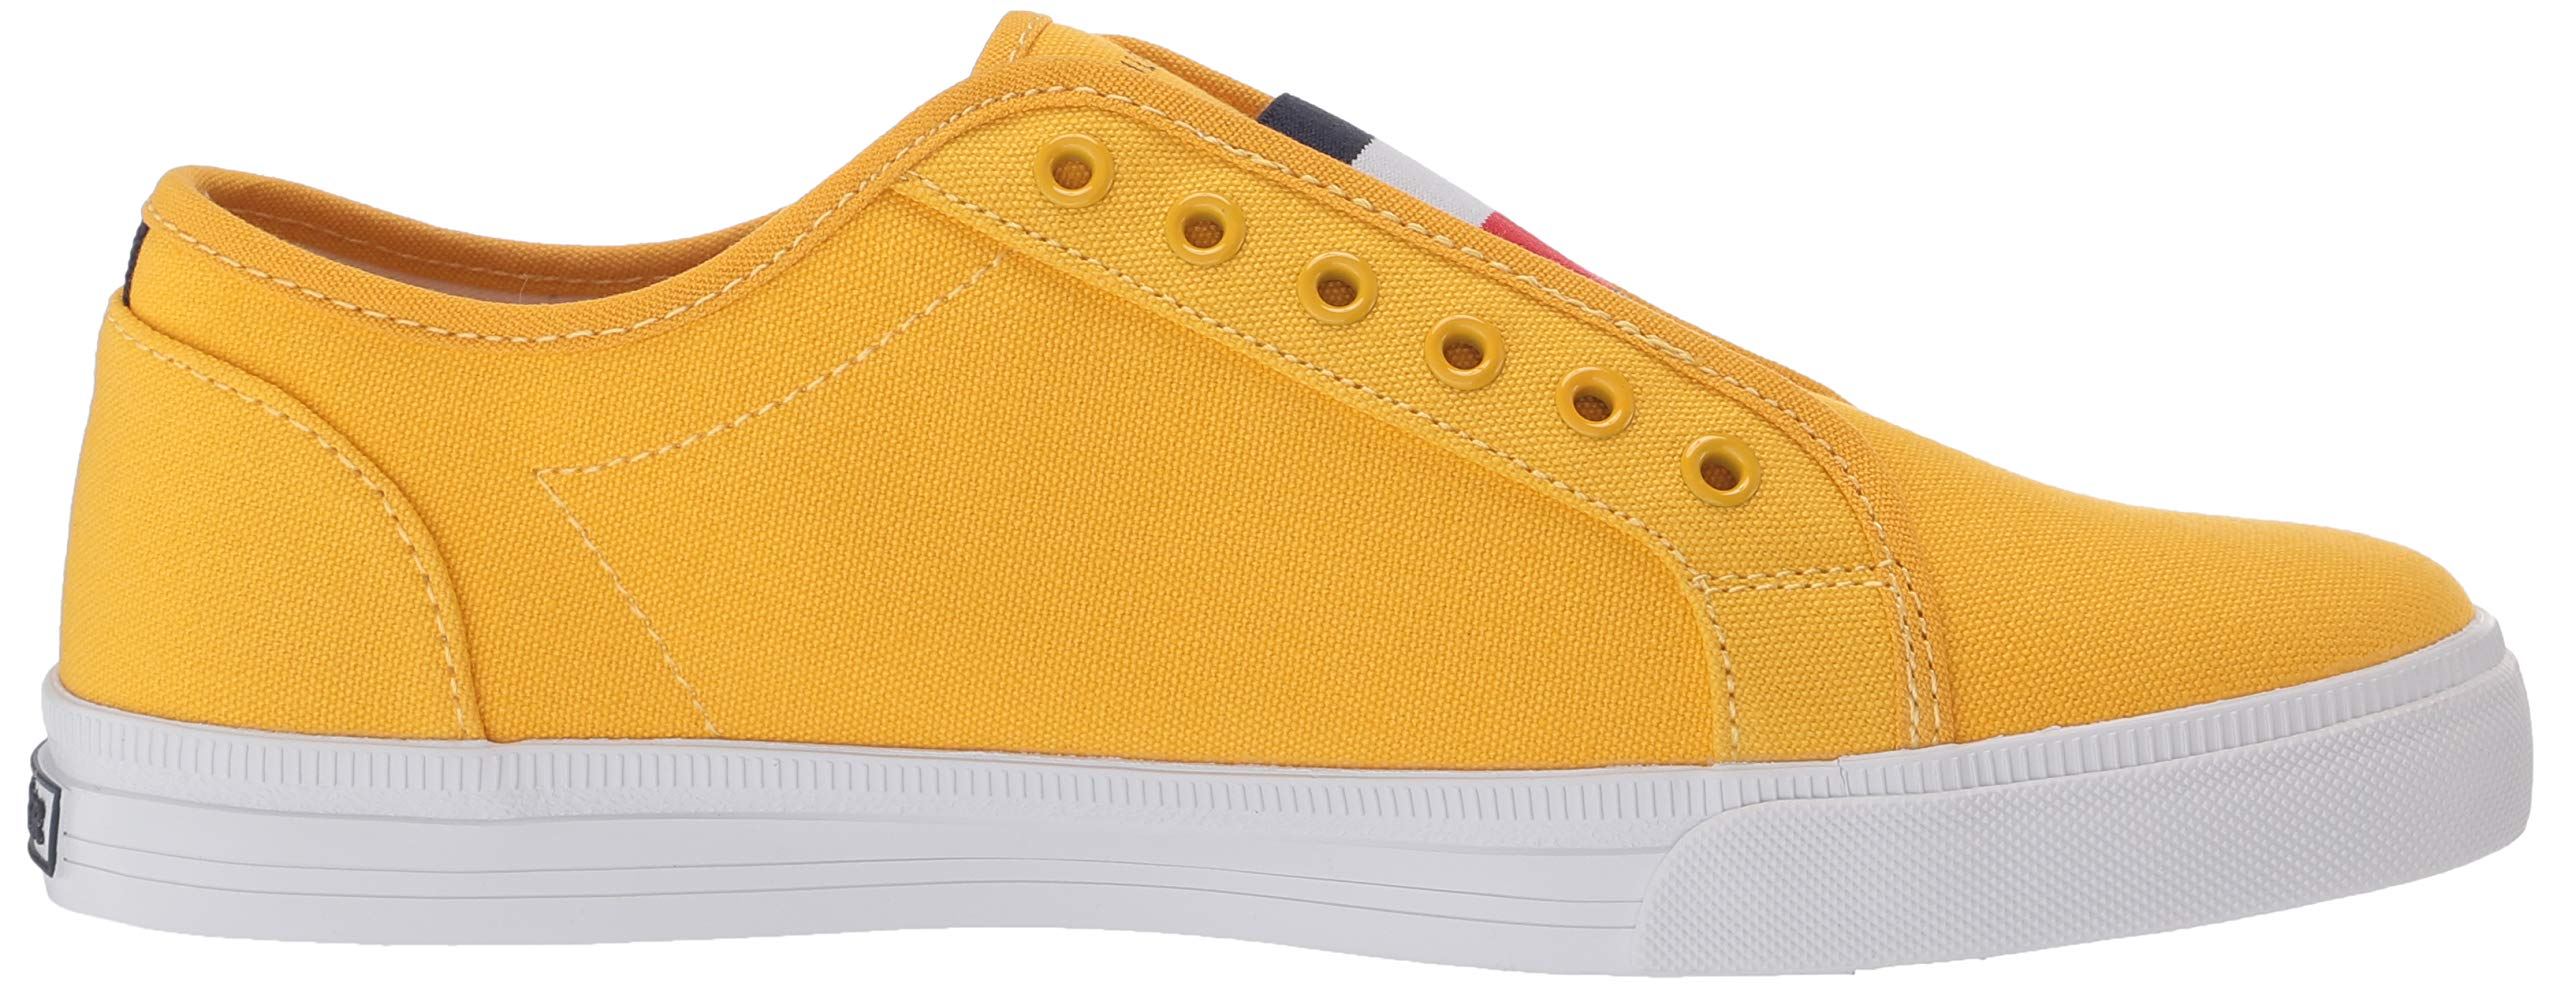 Tommy Hilfiger Women/'s Fashion Sneaker Choose SZ//color